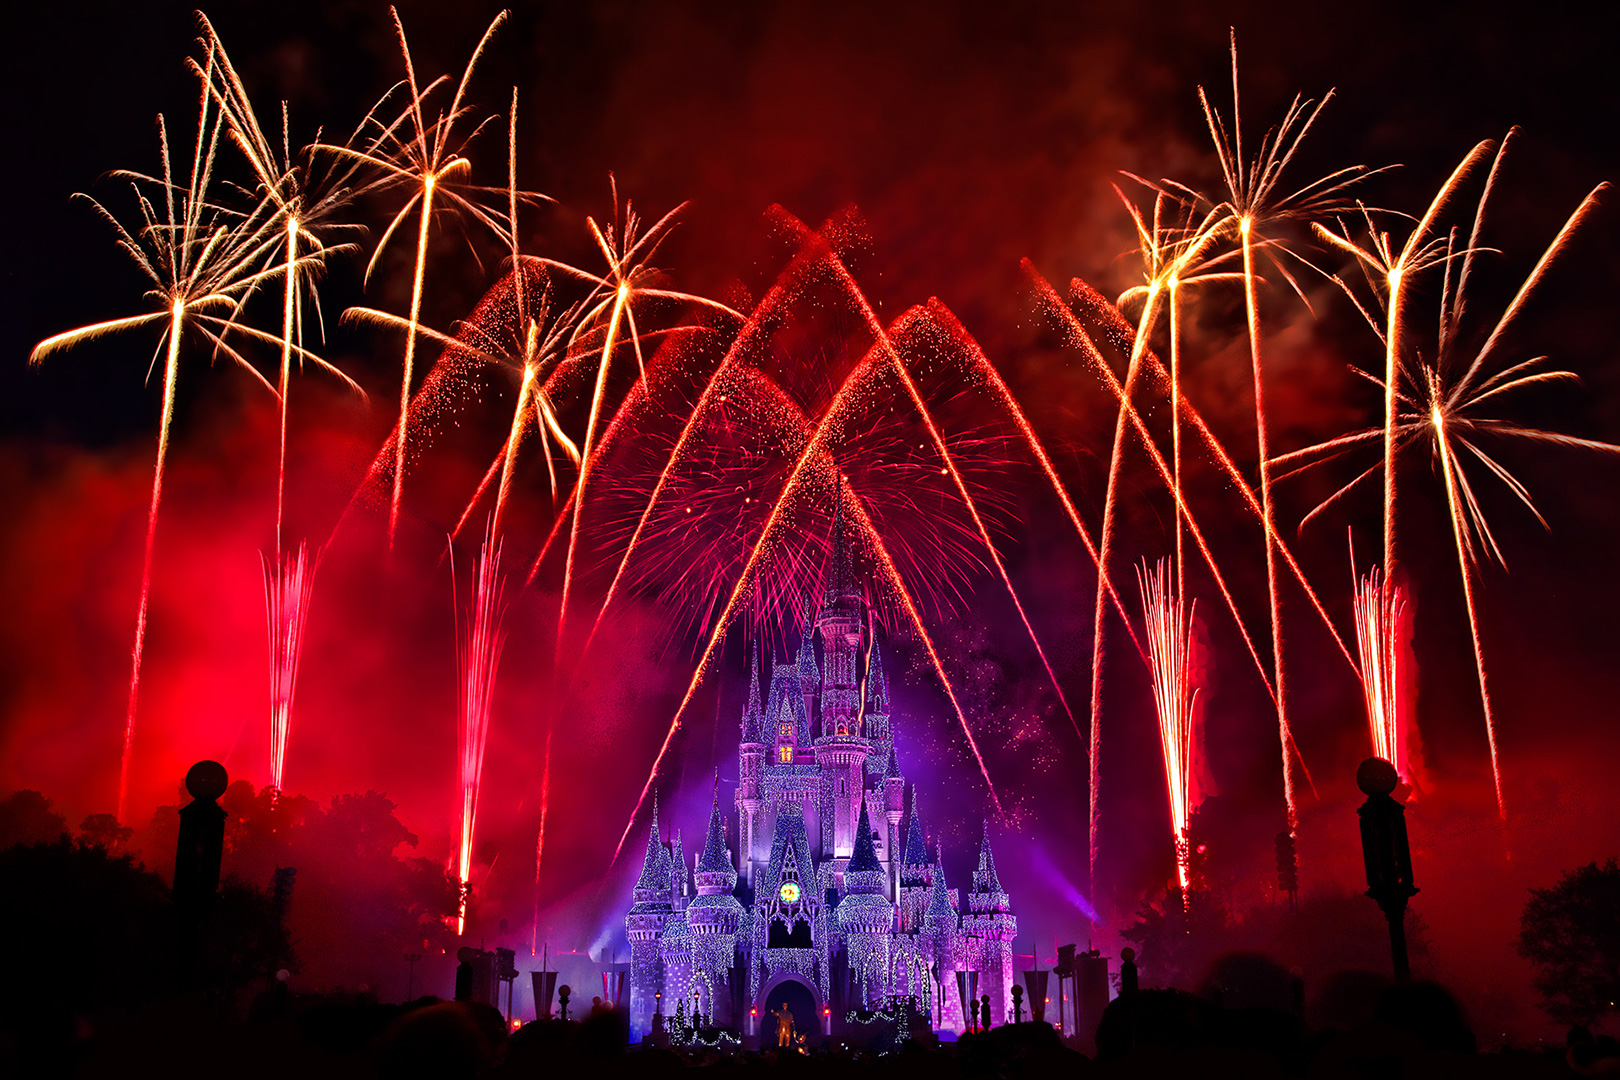 Disney Photography, Disney World Photography, Disneyland Photography, Disney Photos, Disney Pictures, Disney, Disney World, Walt Disney World Resort, The Magic Kingdom, Cindarella Castle, Wishes, Fireworks, Castle Dreamlights, Fireworks, Show